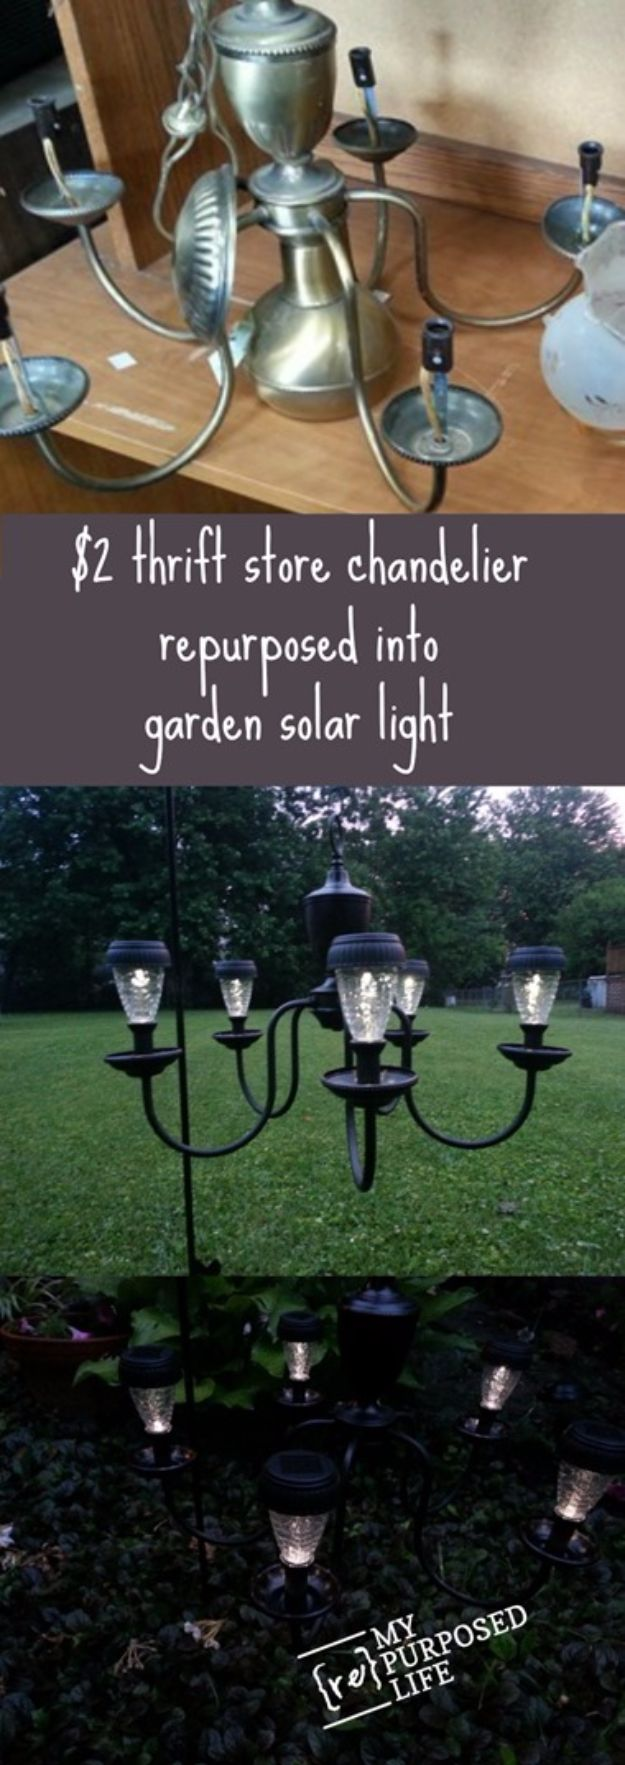 DIY Outdoor Lighting Ideas - Chandelier Solar Lights - Do It Yourself Lighting Ideas for the Backyard, Patio, Porch and Pool - Lights, Chandeliers, Lamps and String Lights for Your Outdoors - Dining Table and Chair Lighting, Overhead, Sconces and Weatherproof Projects #diy #lighting